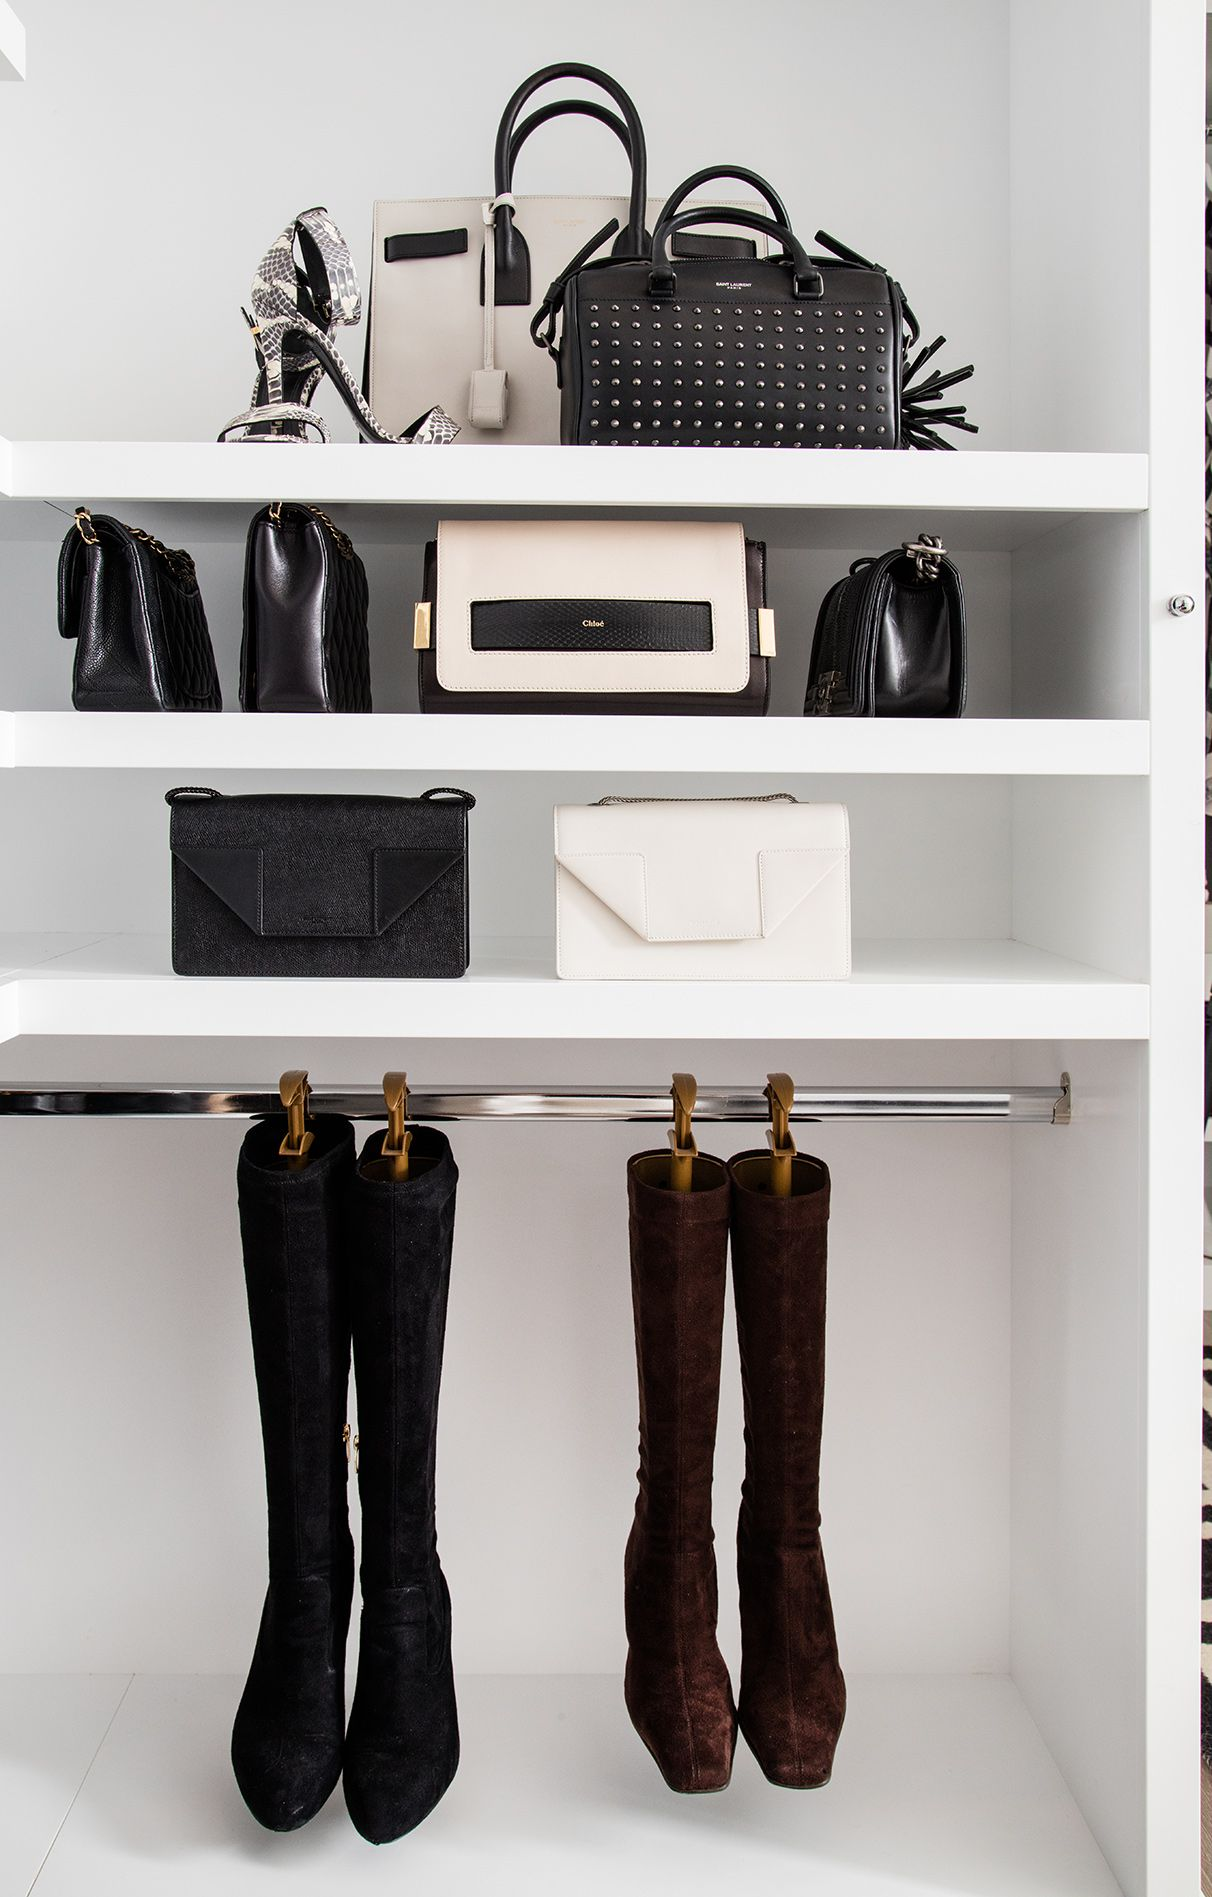 Go Inside Tyra Banksu0027s Immaculate Closet (and Get Some Tips From Her  Organizing Pro)   A BOUTIQUE EXPERIENCE From InStyle.com